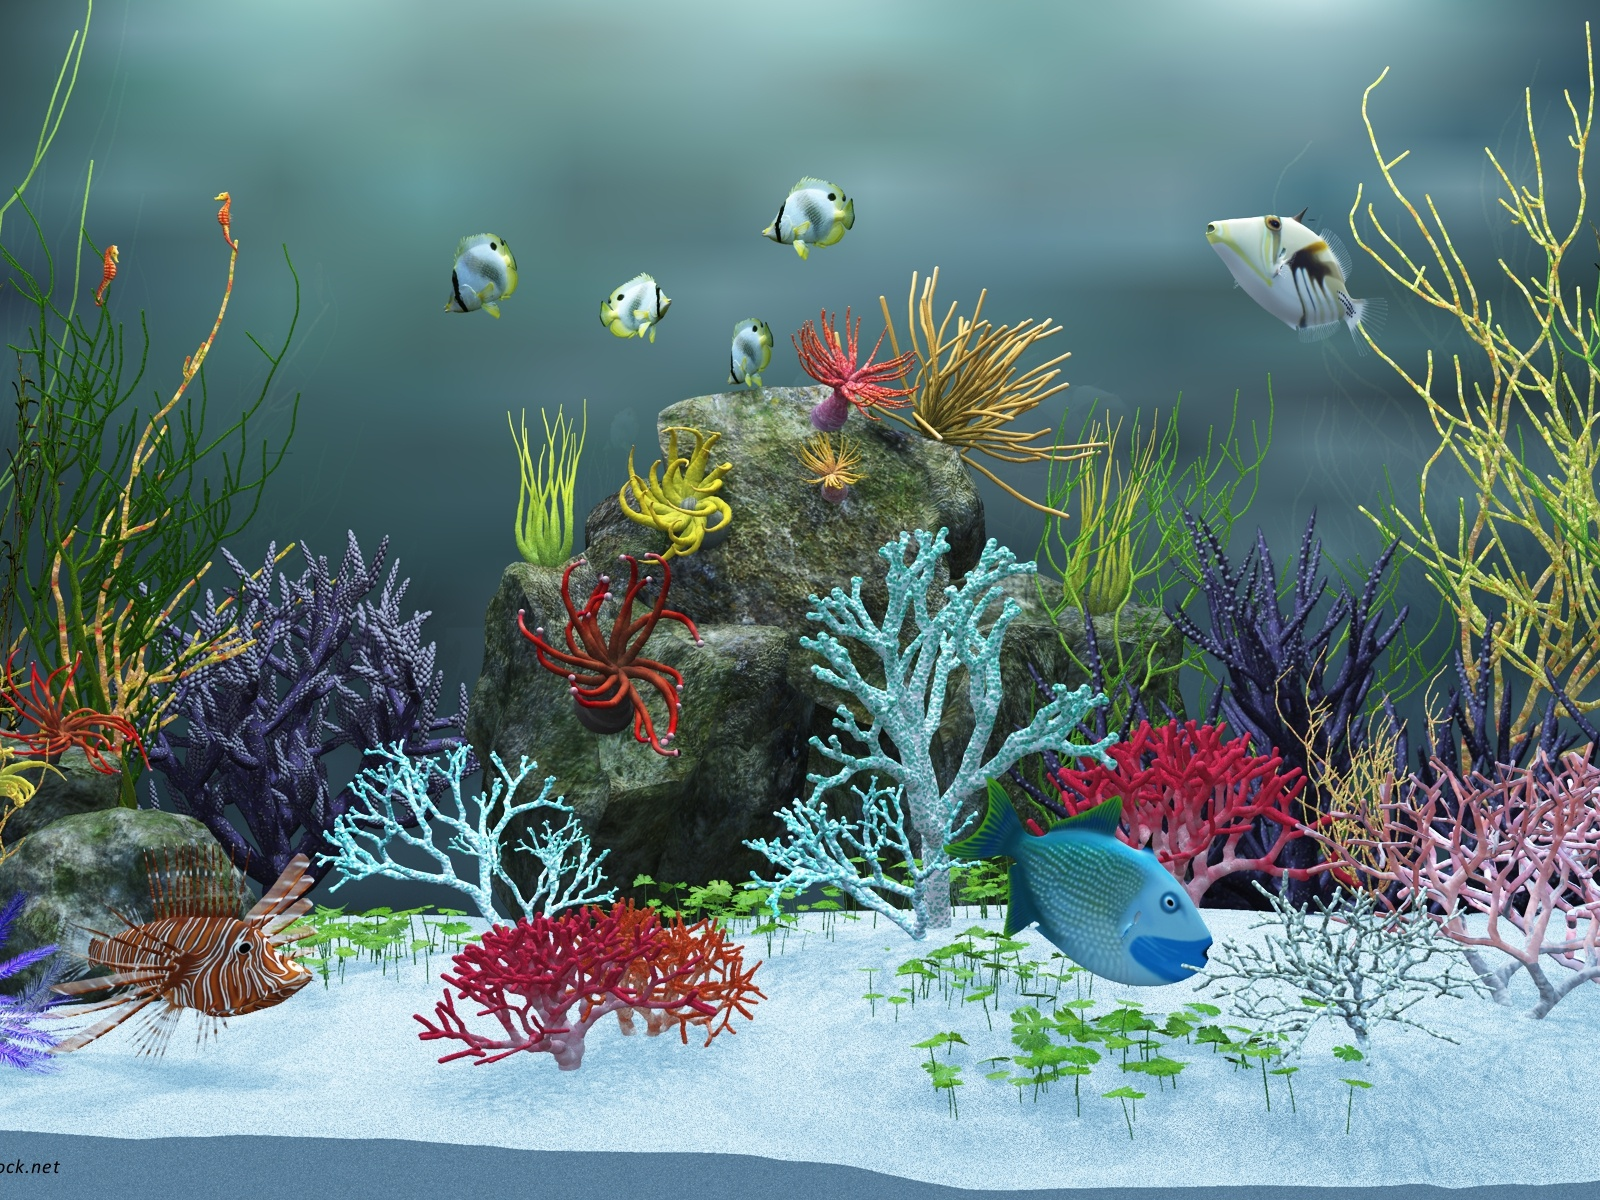 Underwater World Post, Various Fishes Are Swimming, Colorful Sea Plants, a Clean World 1600X1200 free wallpaper download